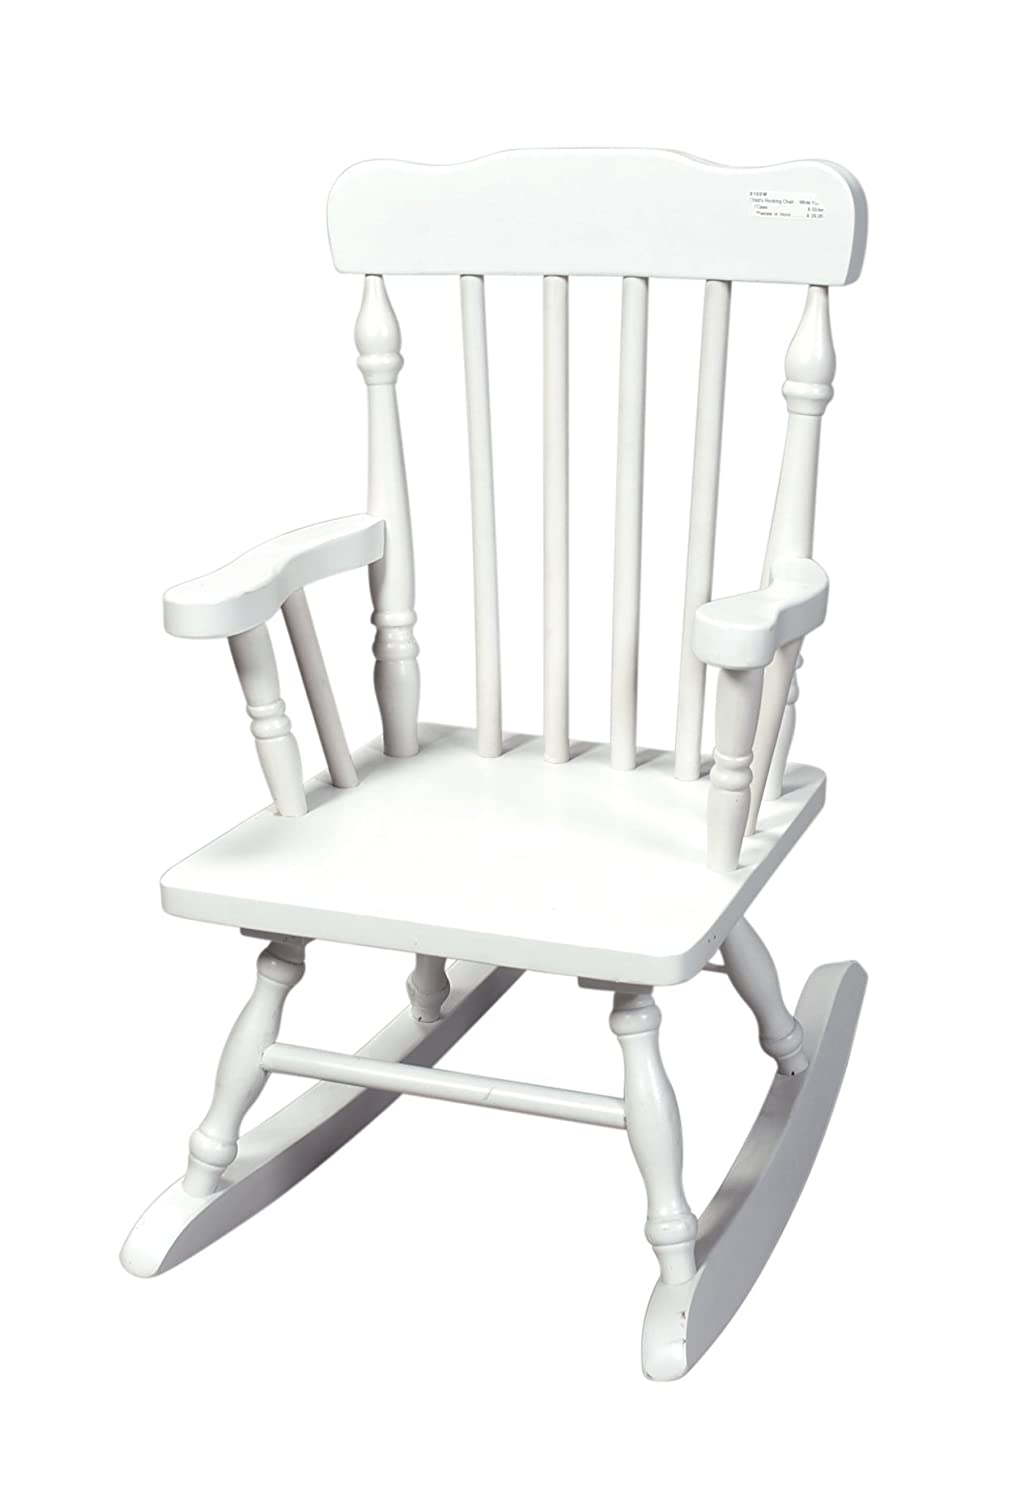 Gift Mark Childu0027s Colonial Rocking Chair White  sc 1 st  Amazon.com & Kidsu0027 Rocking Chairs | Amazon.com